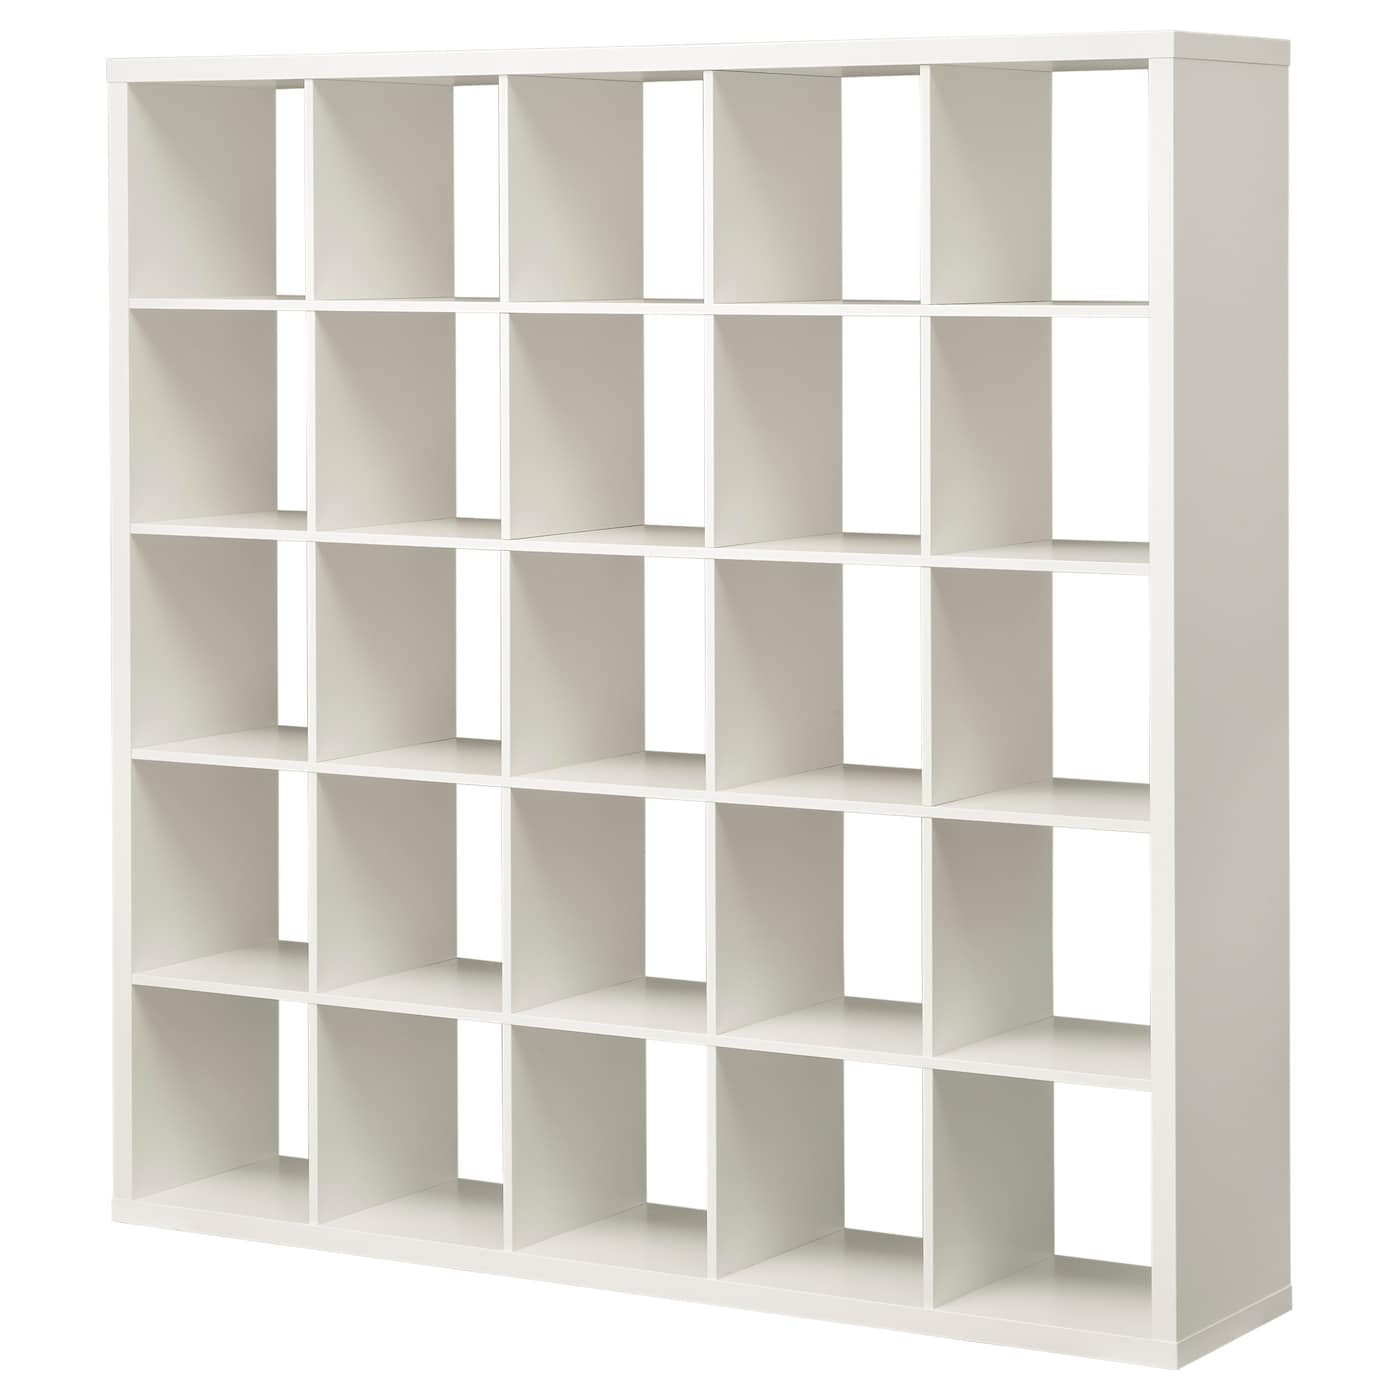 kallax shelving unit white 182x182 cm ikea. Black Bedroom Furniture Sets. Home Design Ideas